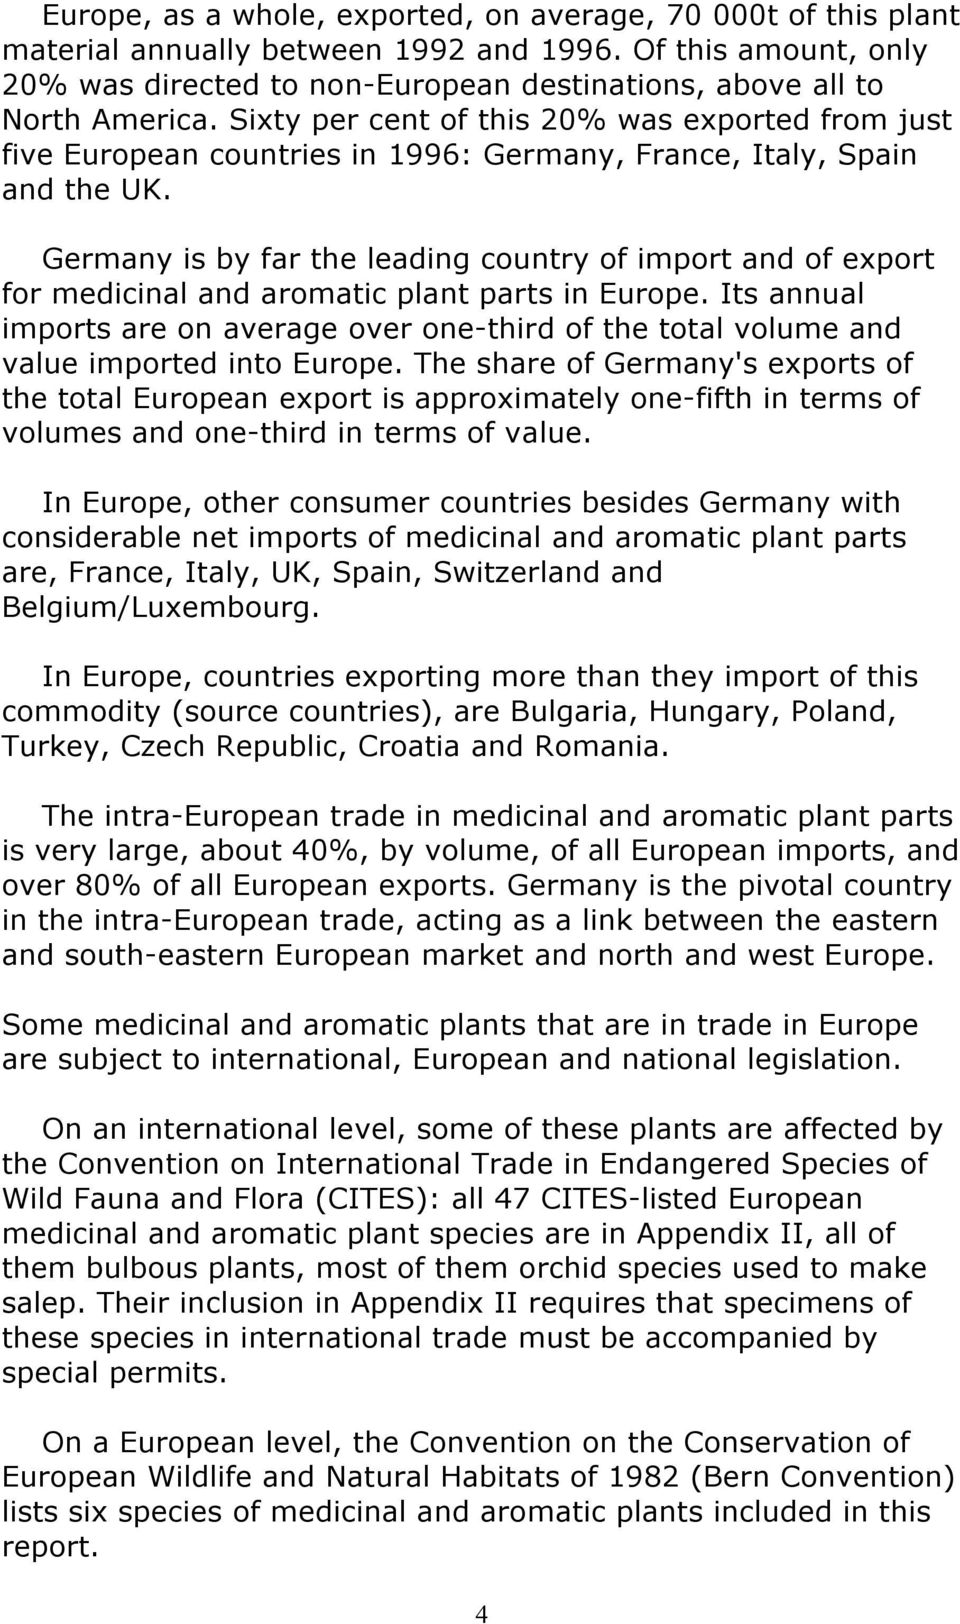 Germany is by far the leading country of import and of export for medicinal and aromatic plant parts in Europe.